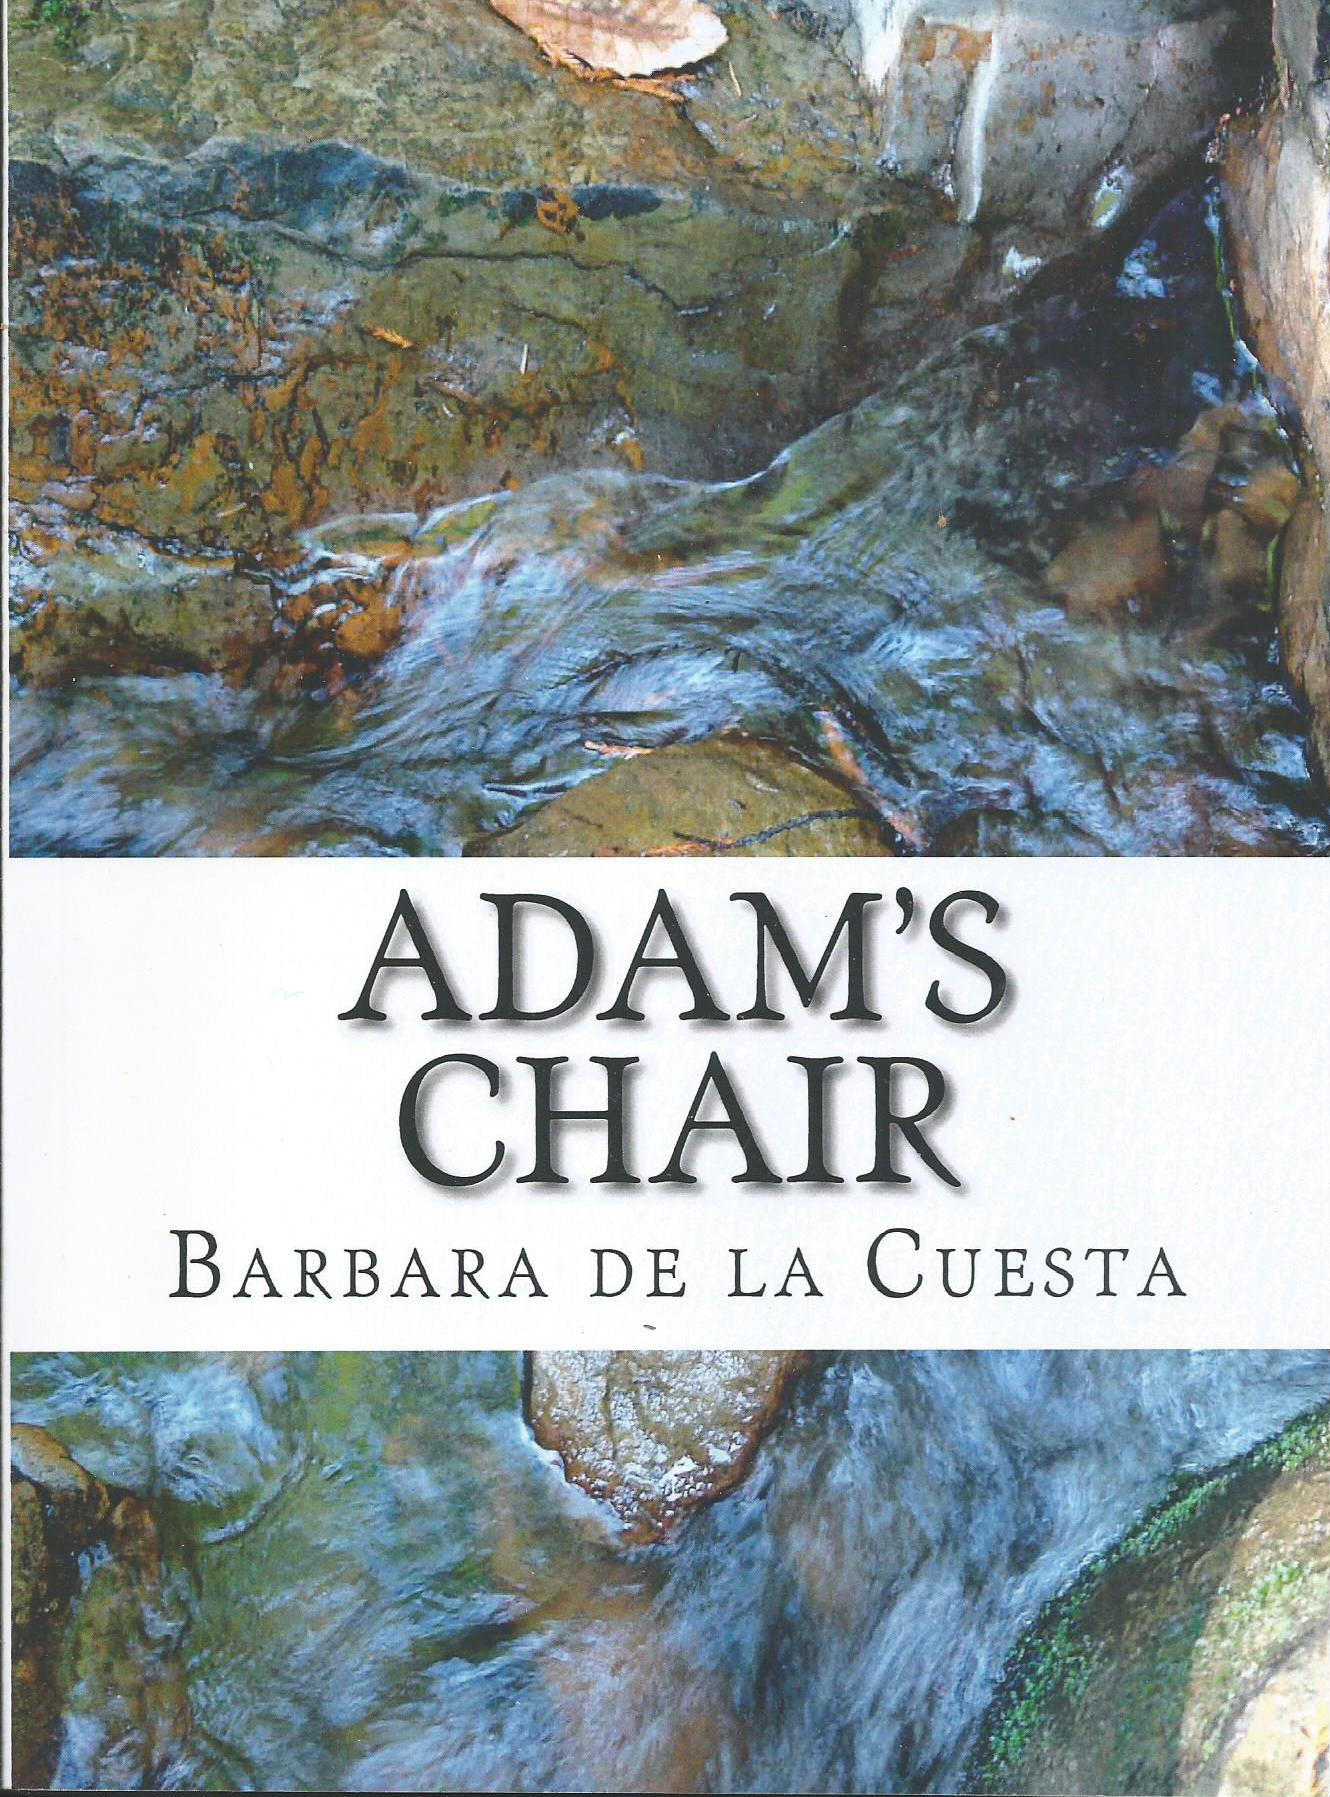 Adam's Chair